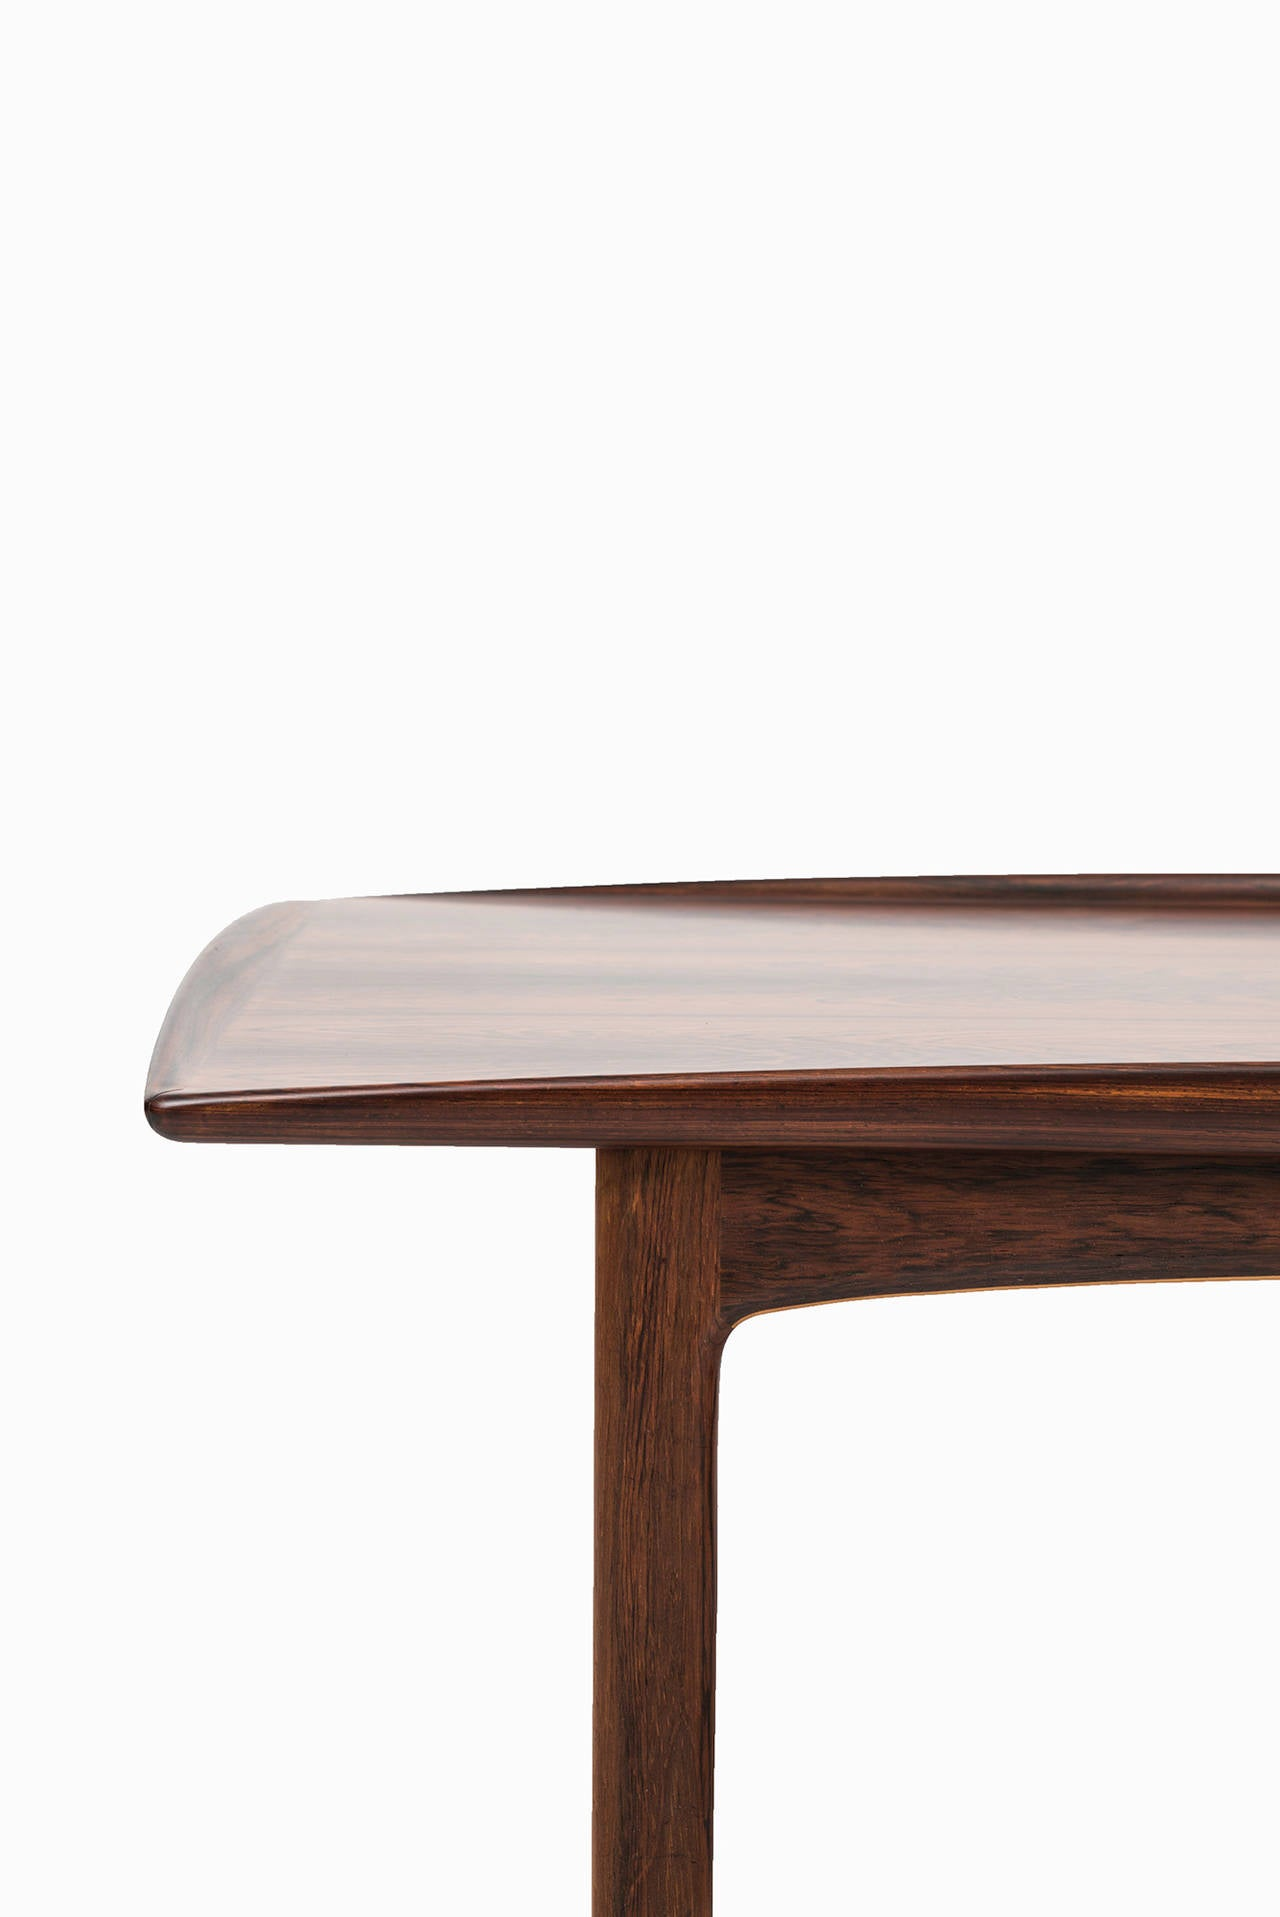 Folke Ohlsson Coffee Table Model Frisco In Rosewood At 1stdibs